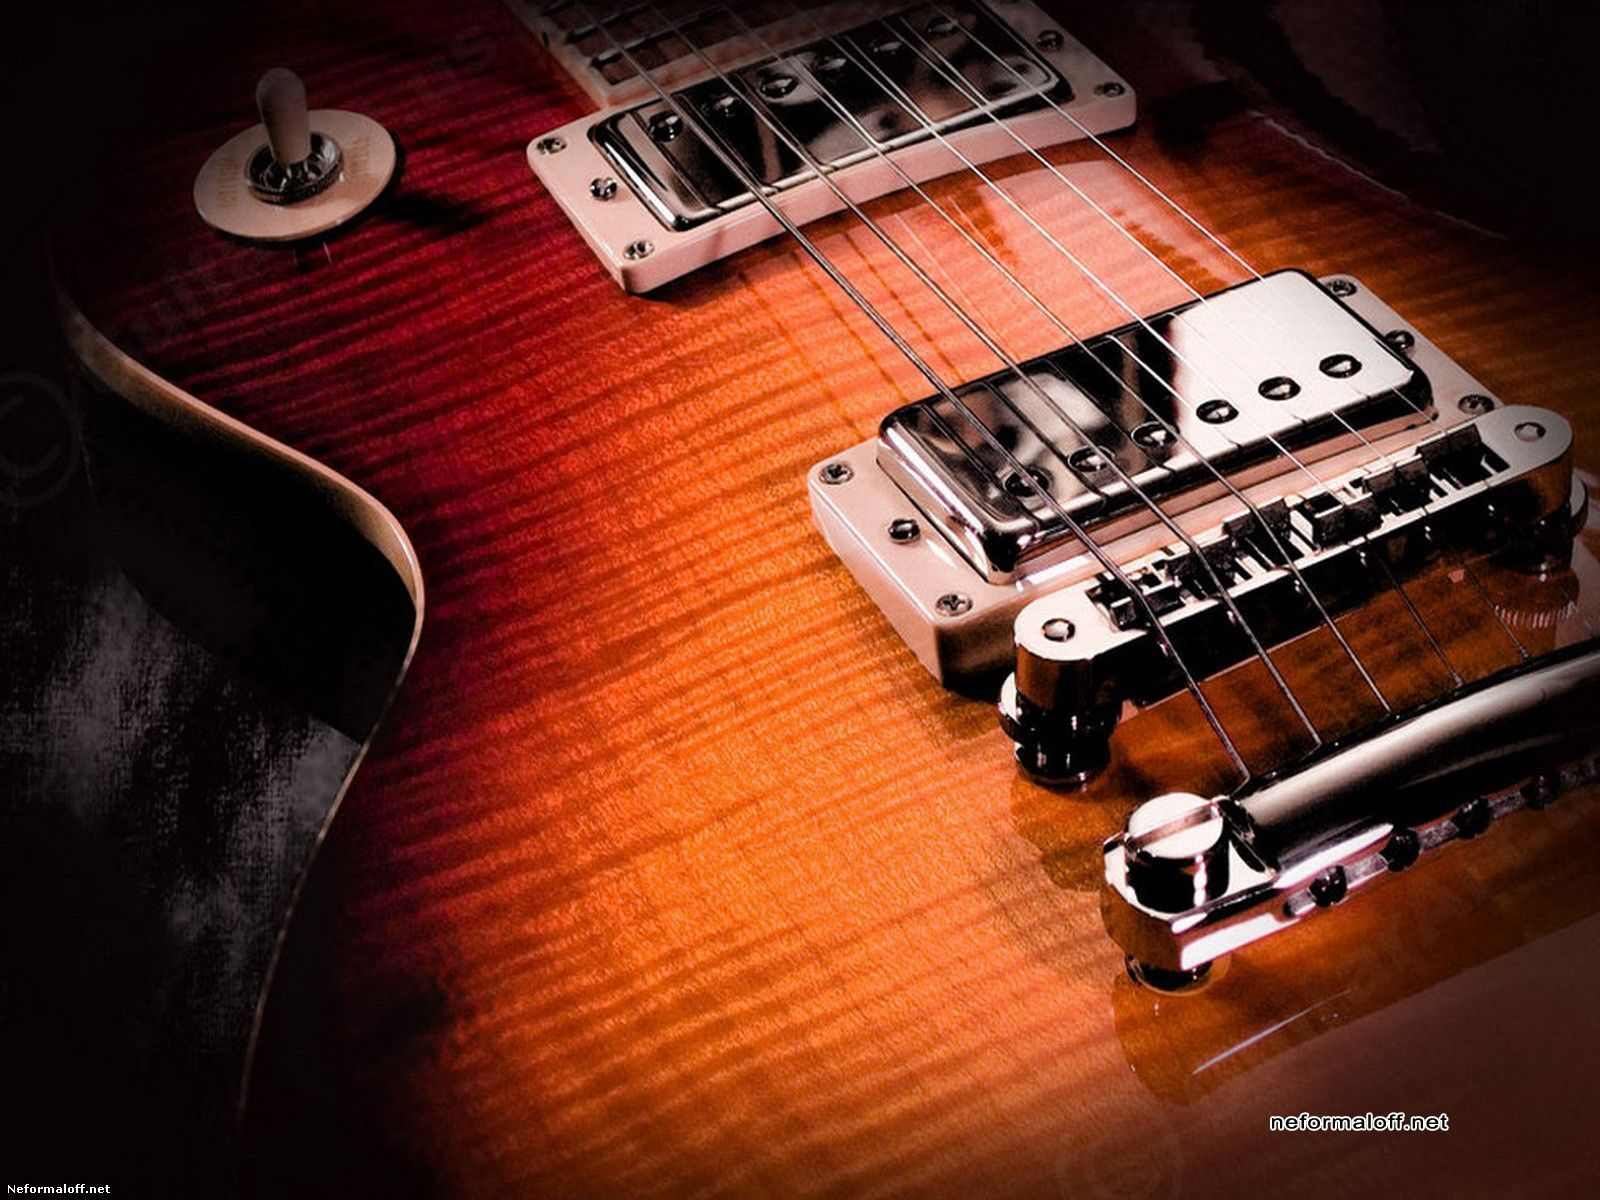 guitar hd wallpaper. | guitarra, instrumento musical de cuerda